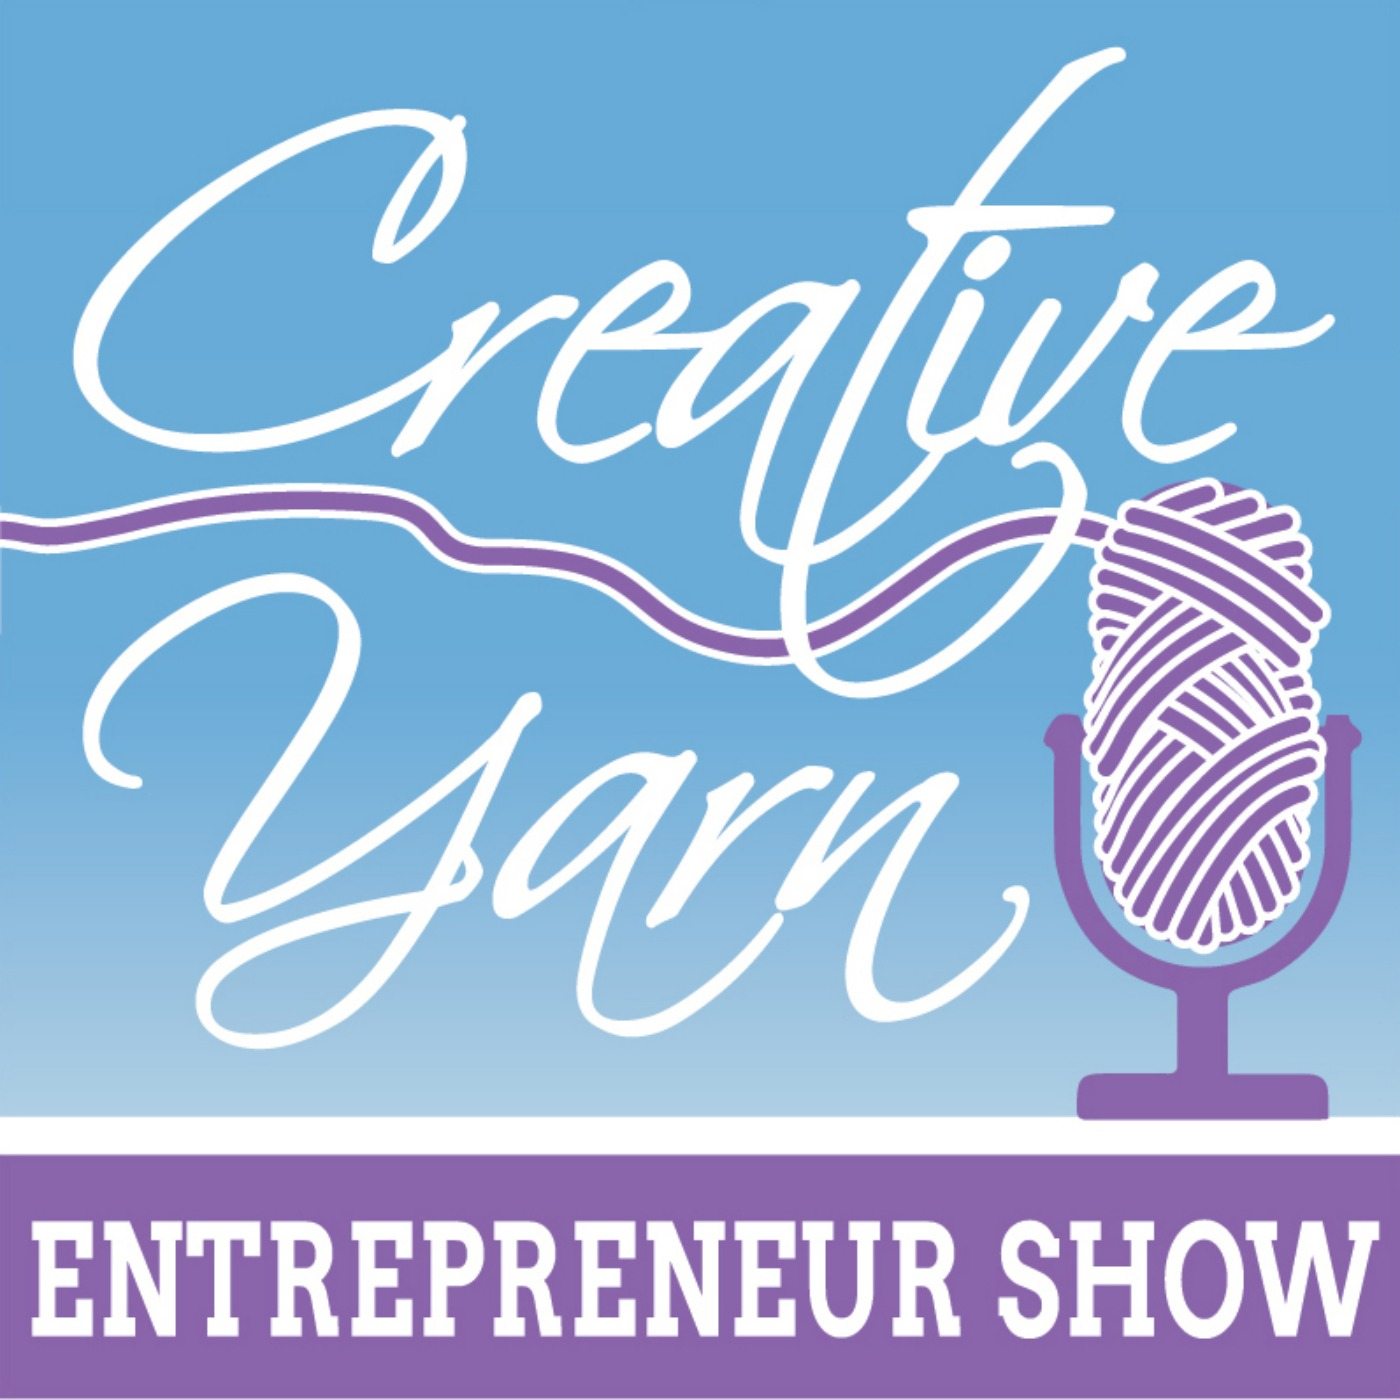 Episode 14: Self Care for the Indie Business Owner with Vanessa Laven - The Creative Yarn Entrepreneur Show